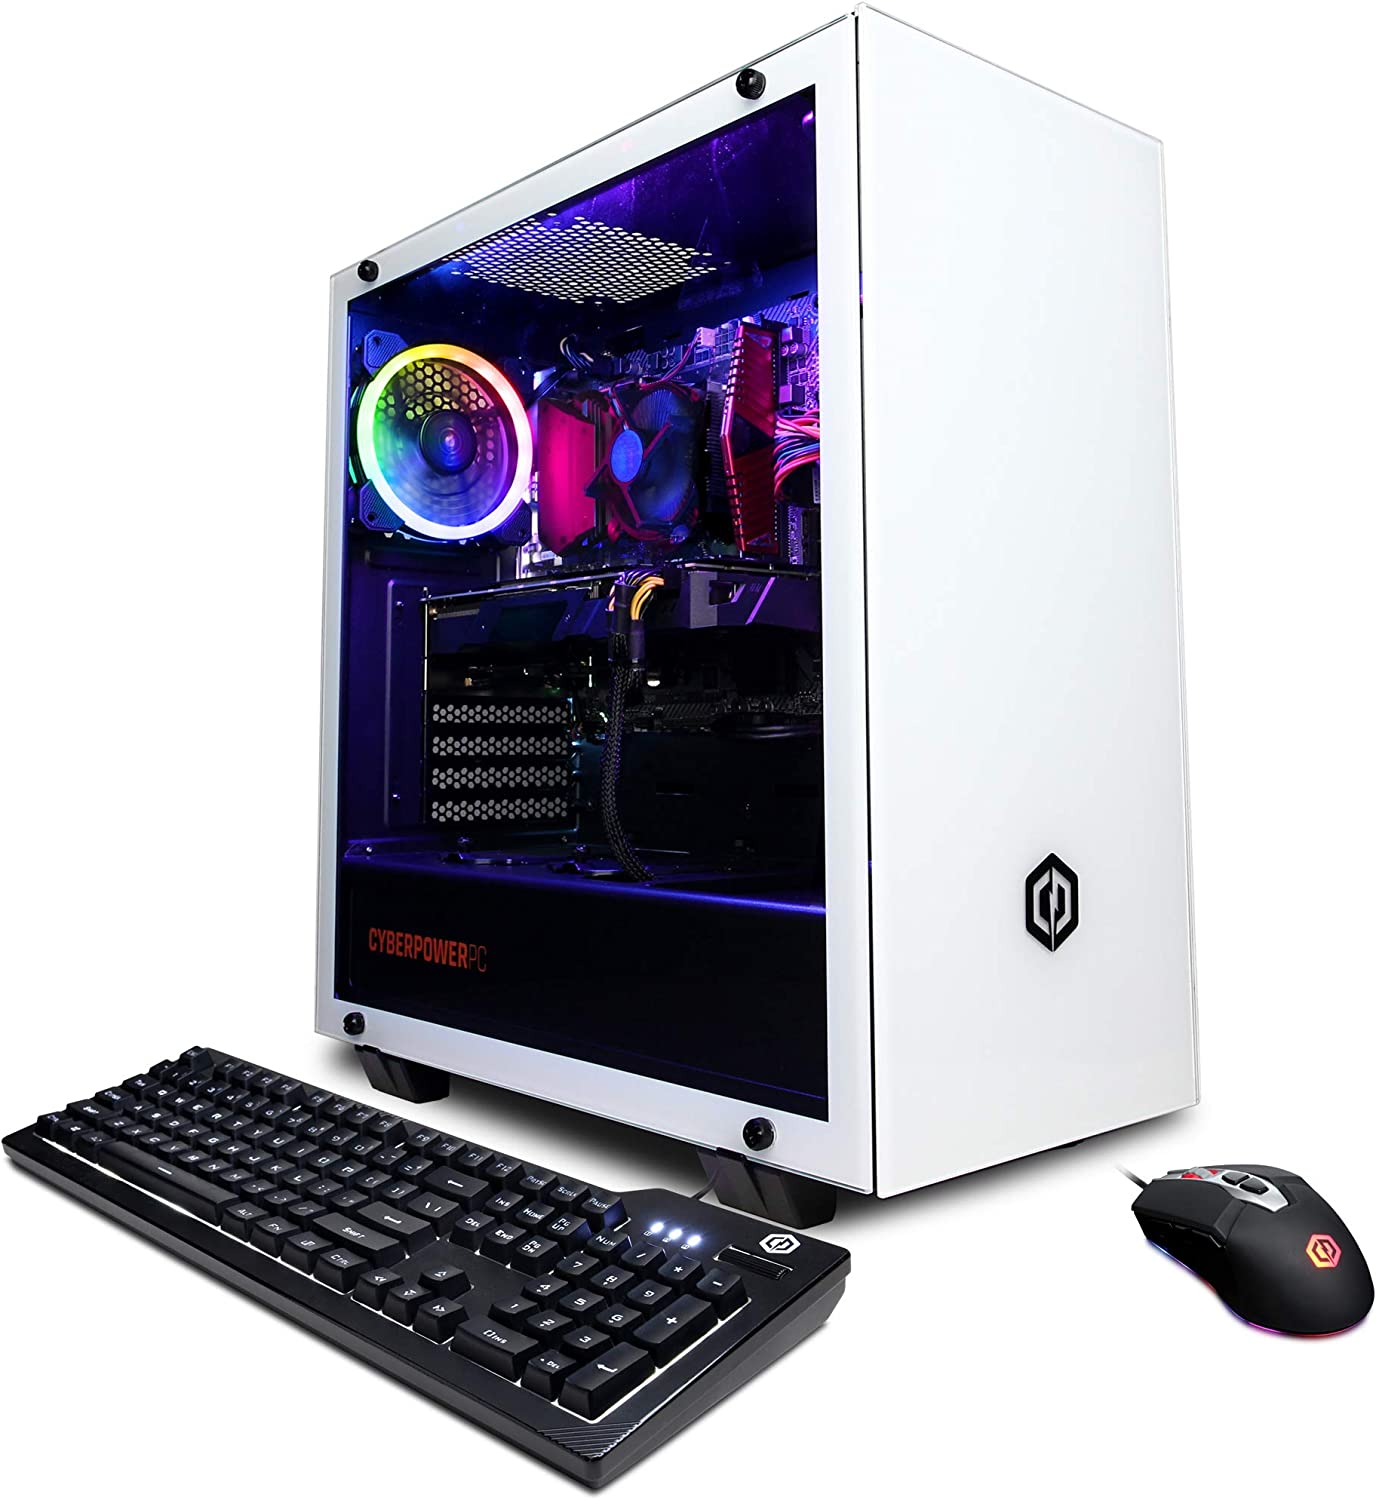 CyberpowerPC Gamer Xtreme VR Gaming PC, Intel i5-9400F 2.9GHz, Radeon RX 5500 XT 8GB, 8GB DDR4, 240GB SSD, 1TB HDD, WiFi & Win 10 Home (GXiVR8020A7)